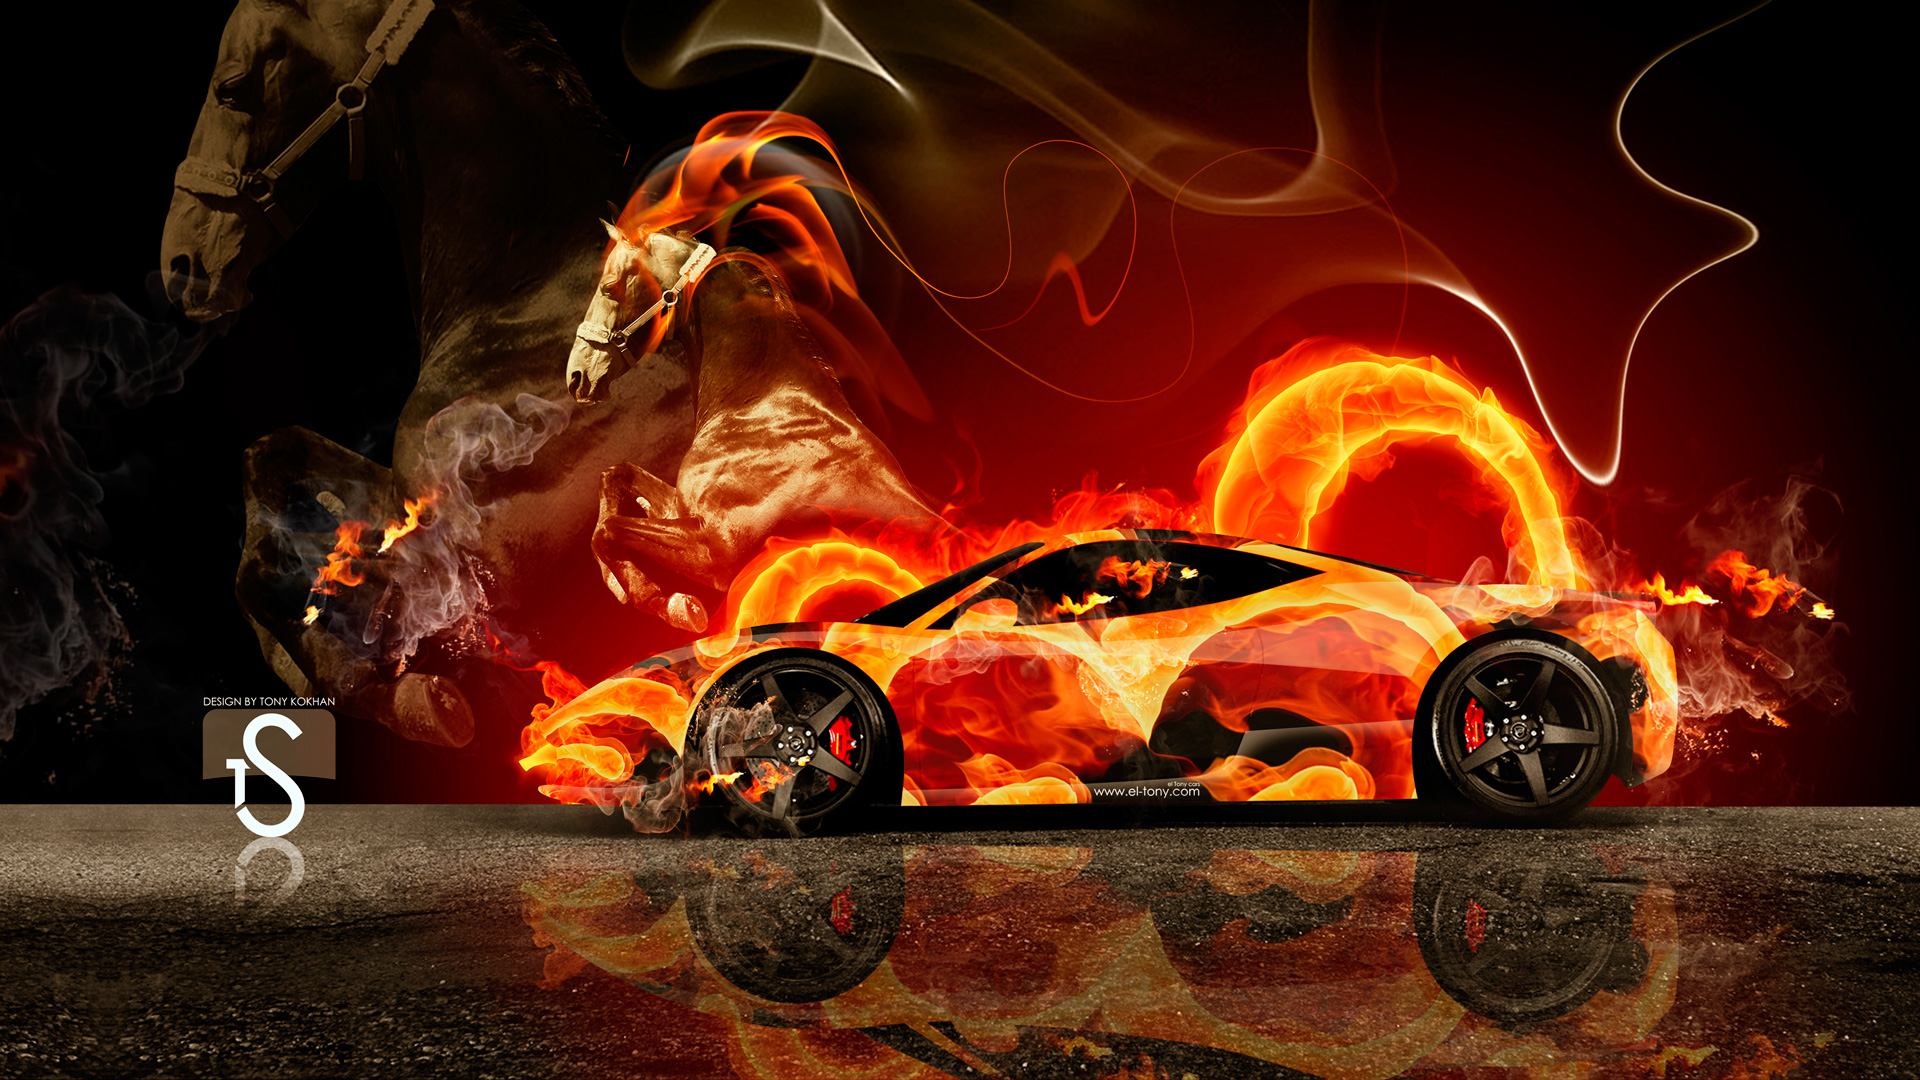 Amazing Ferrari Fire Horse Car 2014 HD Wallpapers Design